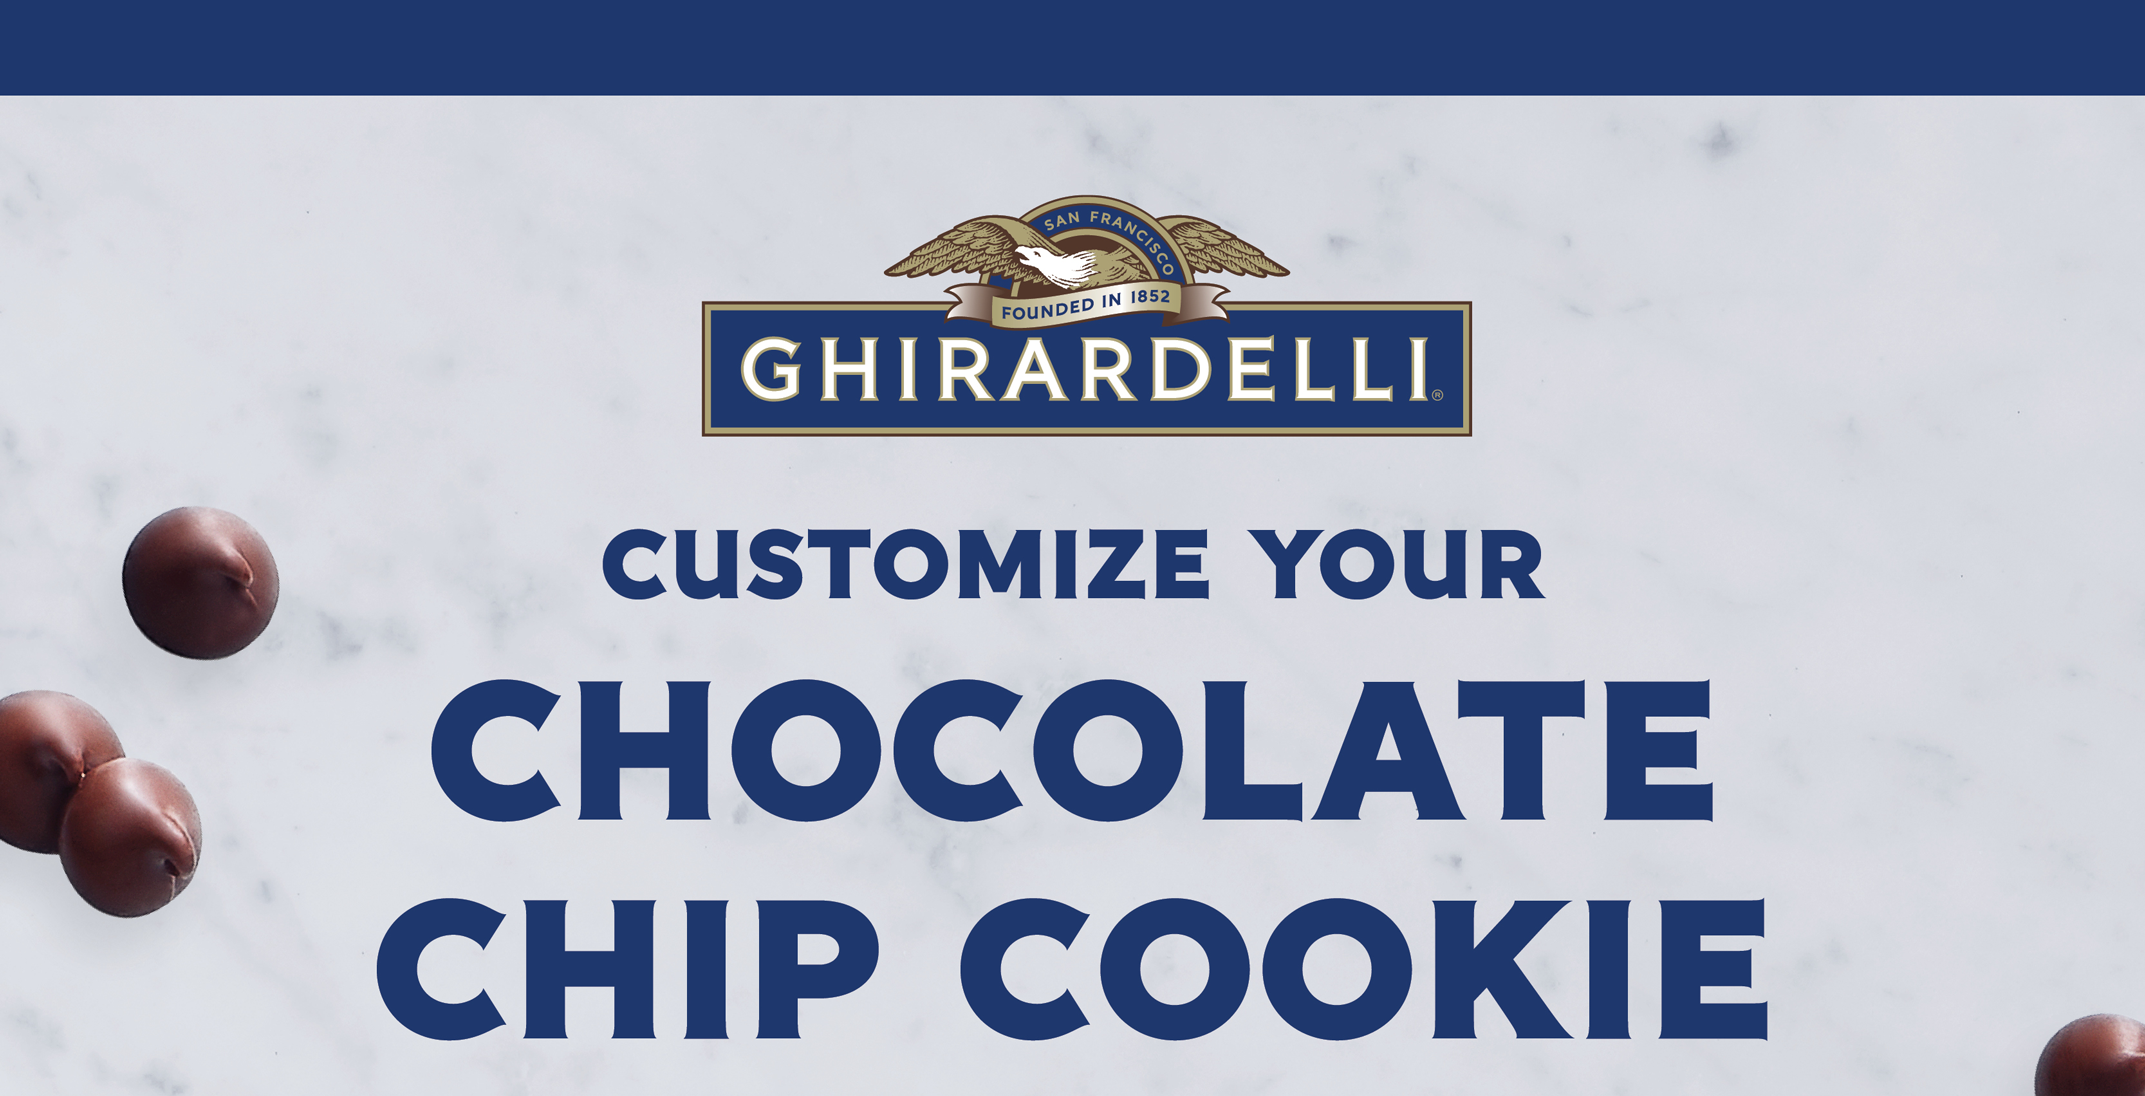 Ghirardelli Grand Chip Cookies